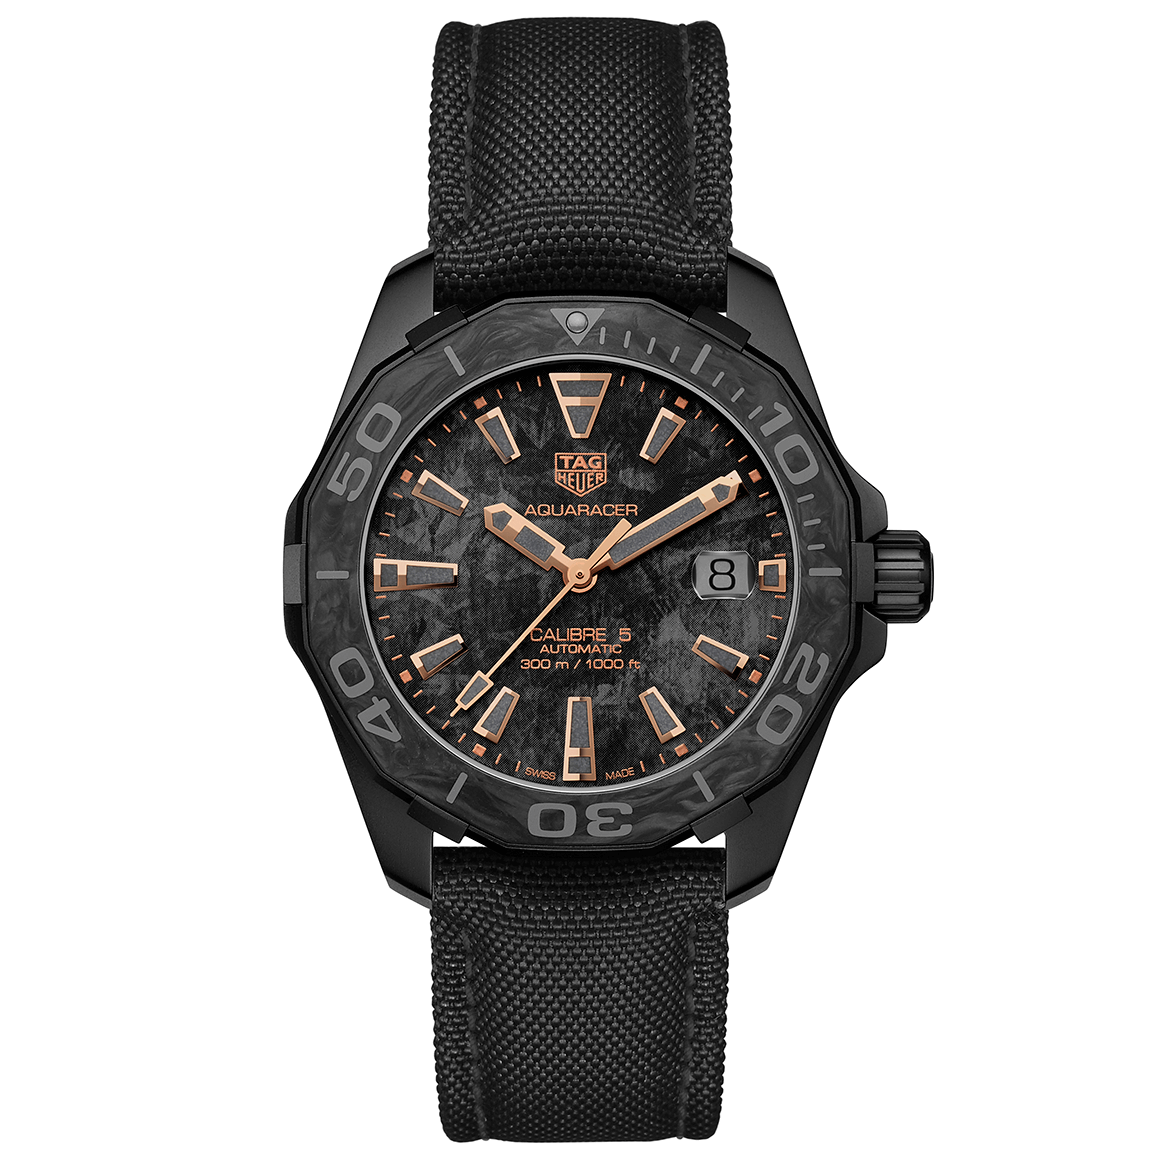 TAG Heuer Aquaracer Carbon professional diving watch